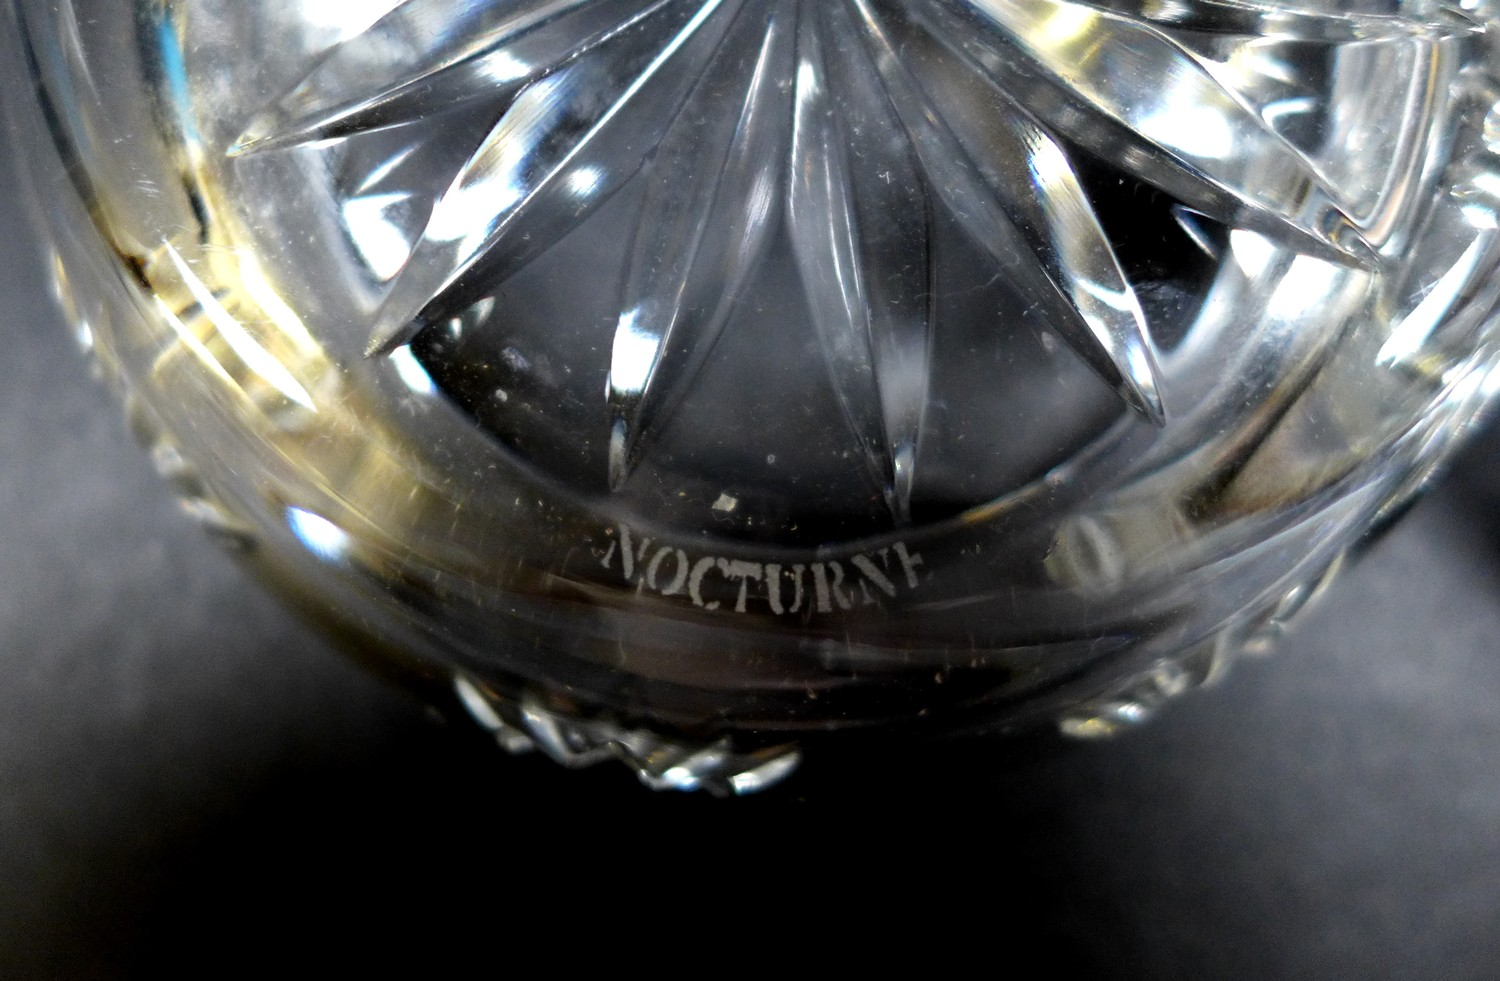 A collection of Waterford Crystal glass wares, including a shallow bowl, 26.5 by 7cm, pedestal bowl, - Image 7 of 12